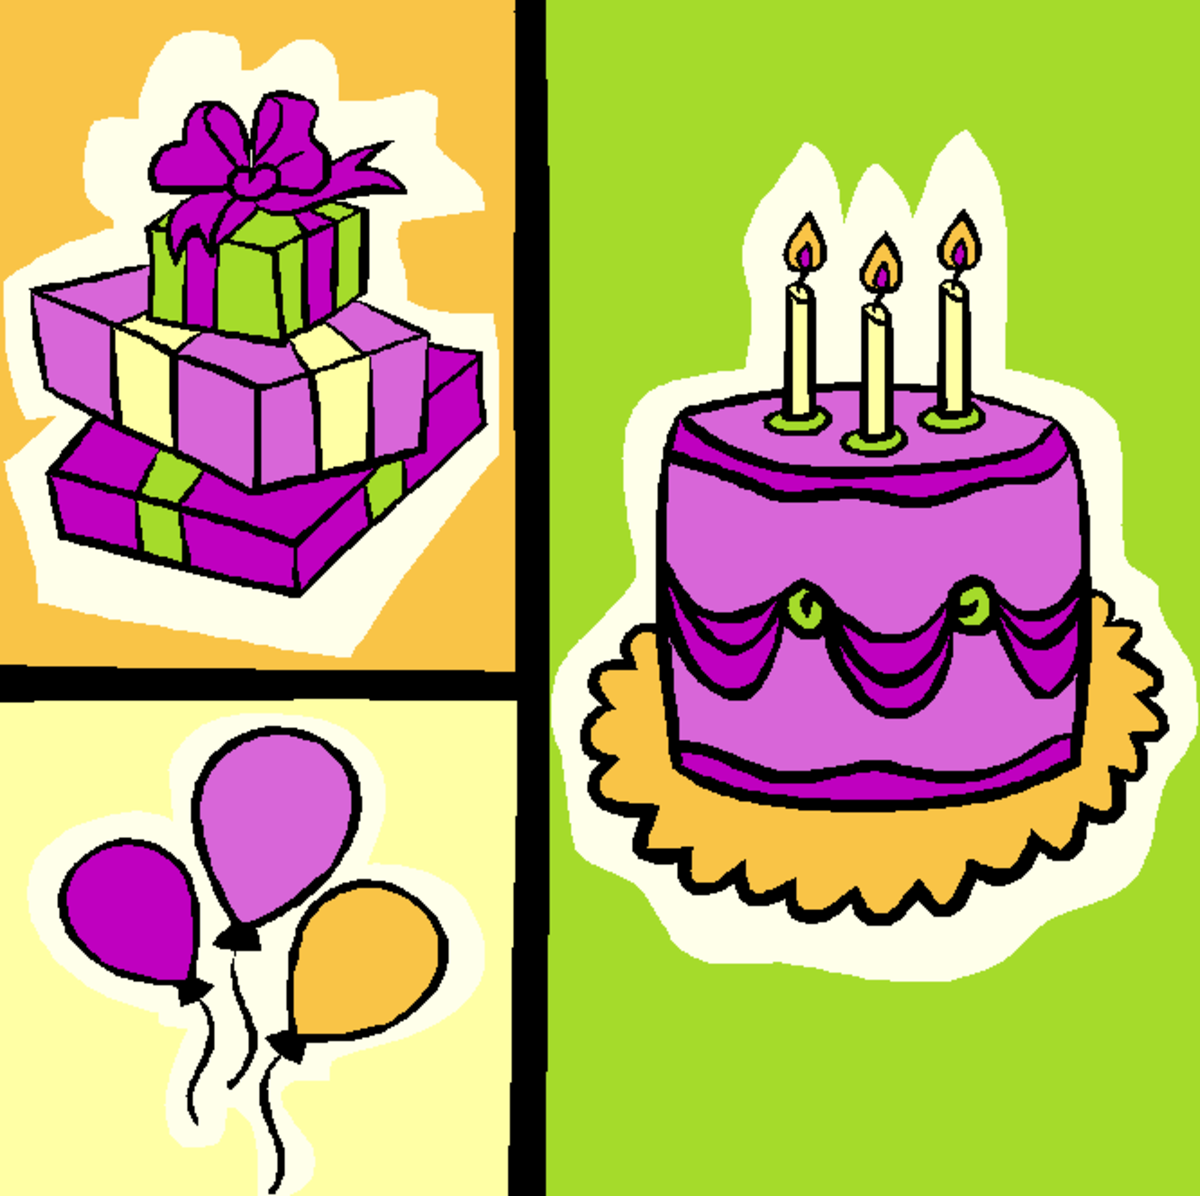 Birthday Cake, Balloons and Gifts Collage